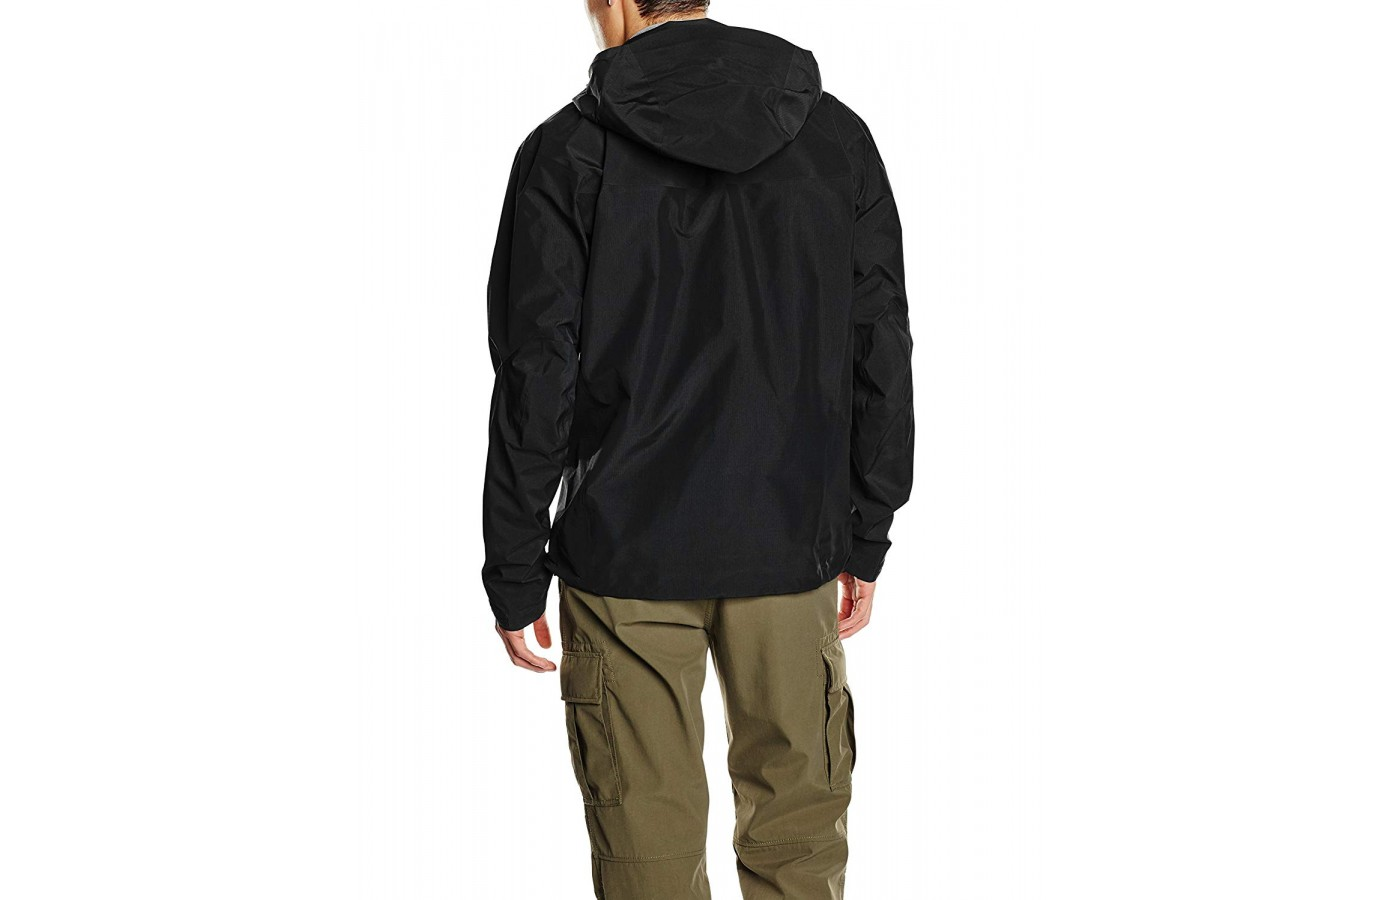 Most of the jacket uses 40-denier Gore-Tex Pro material.